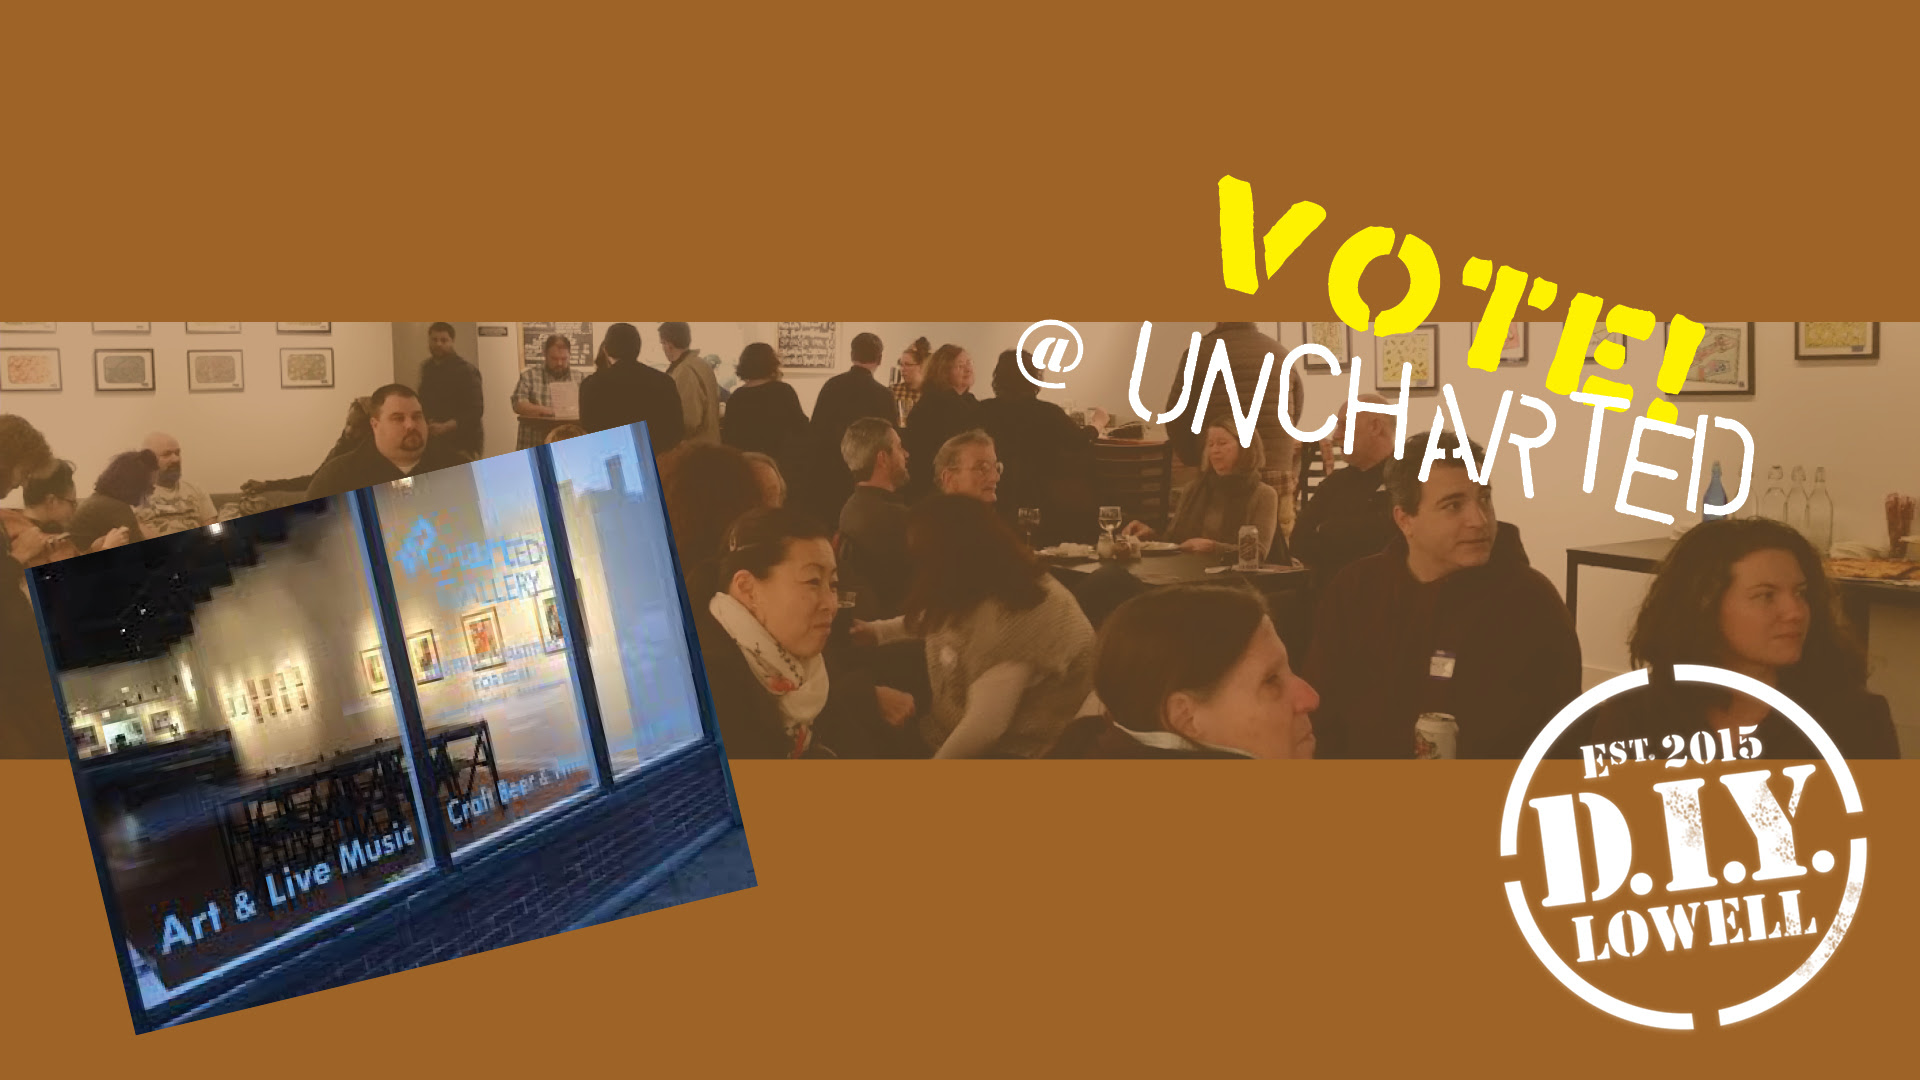 Vote at Uncharted!